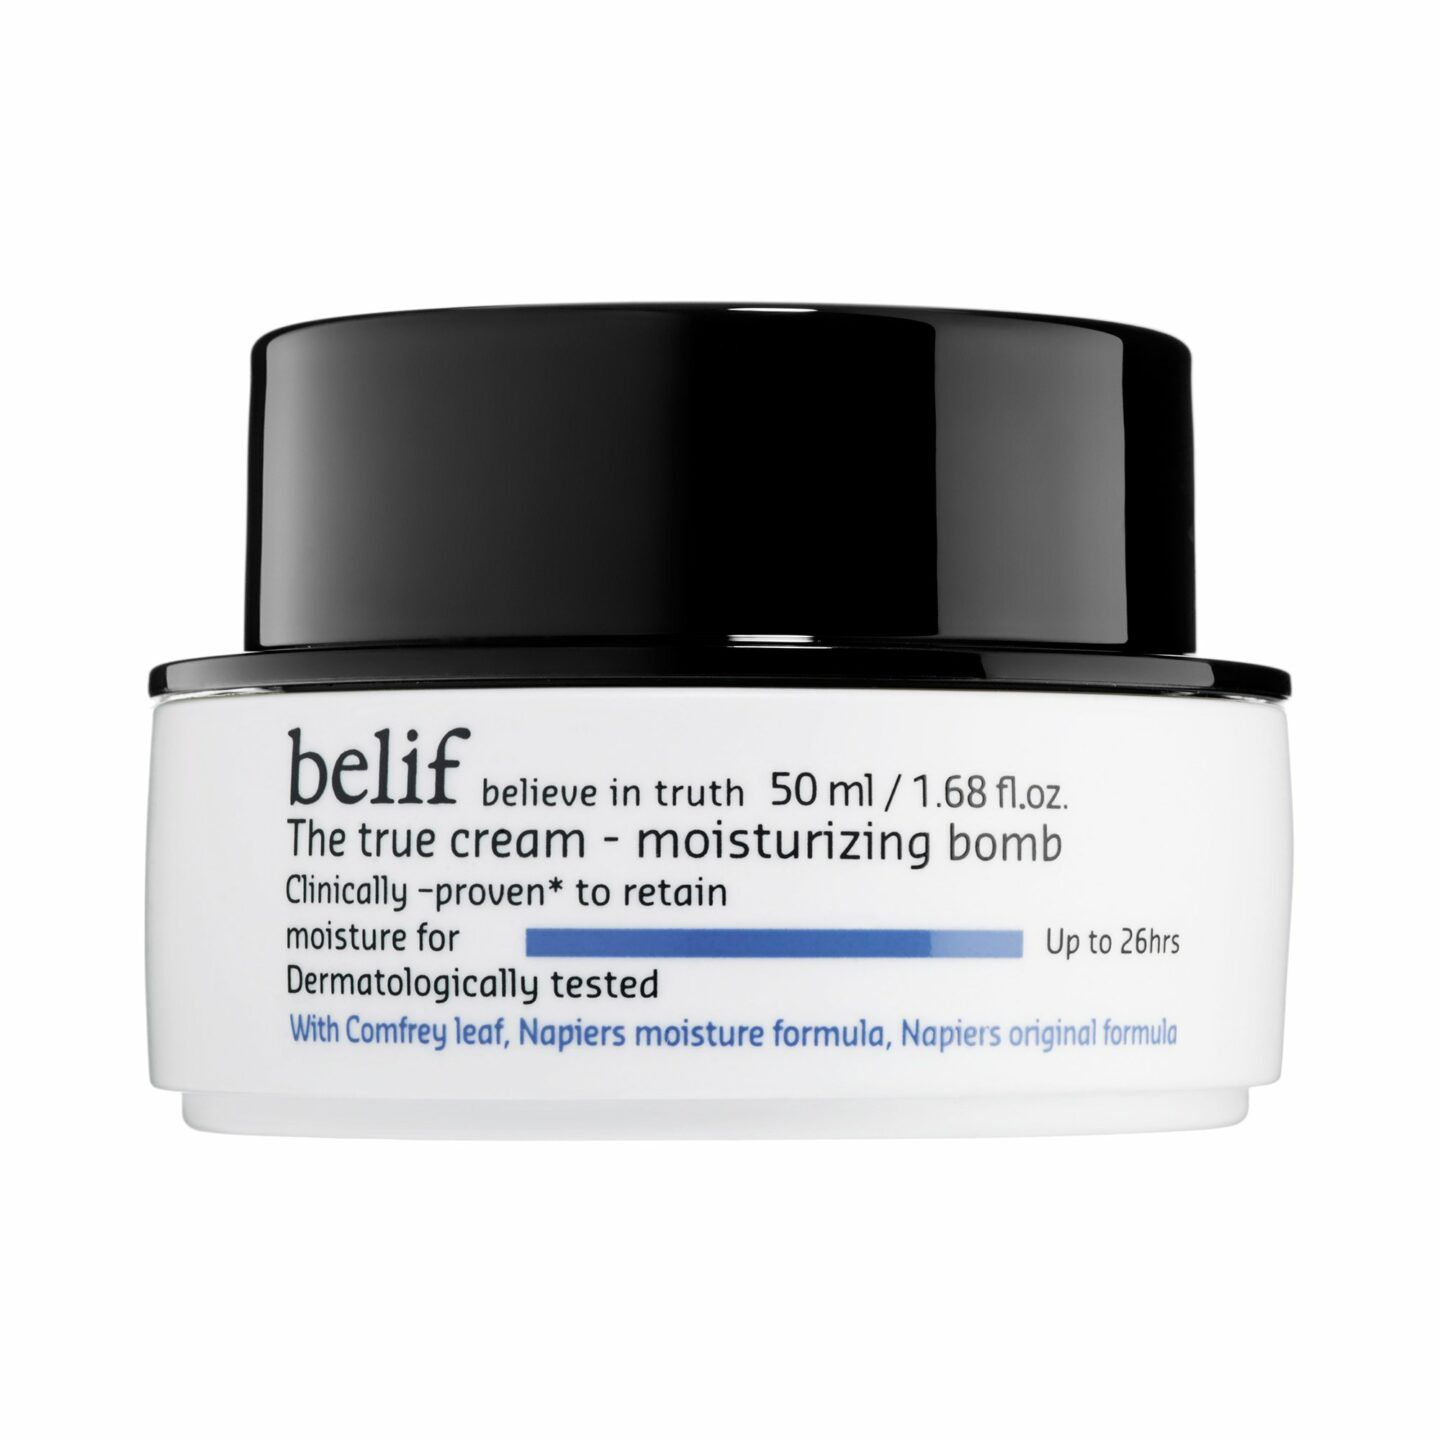 The best Korean moisturizers, by beauty blogger What The Fab